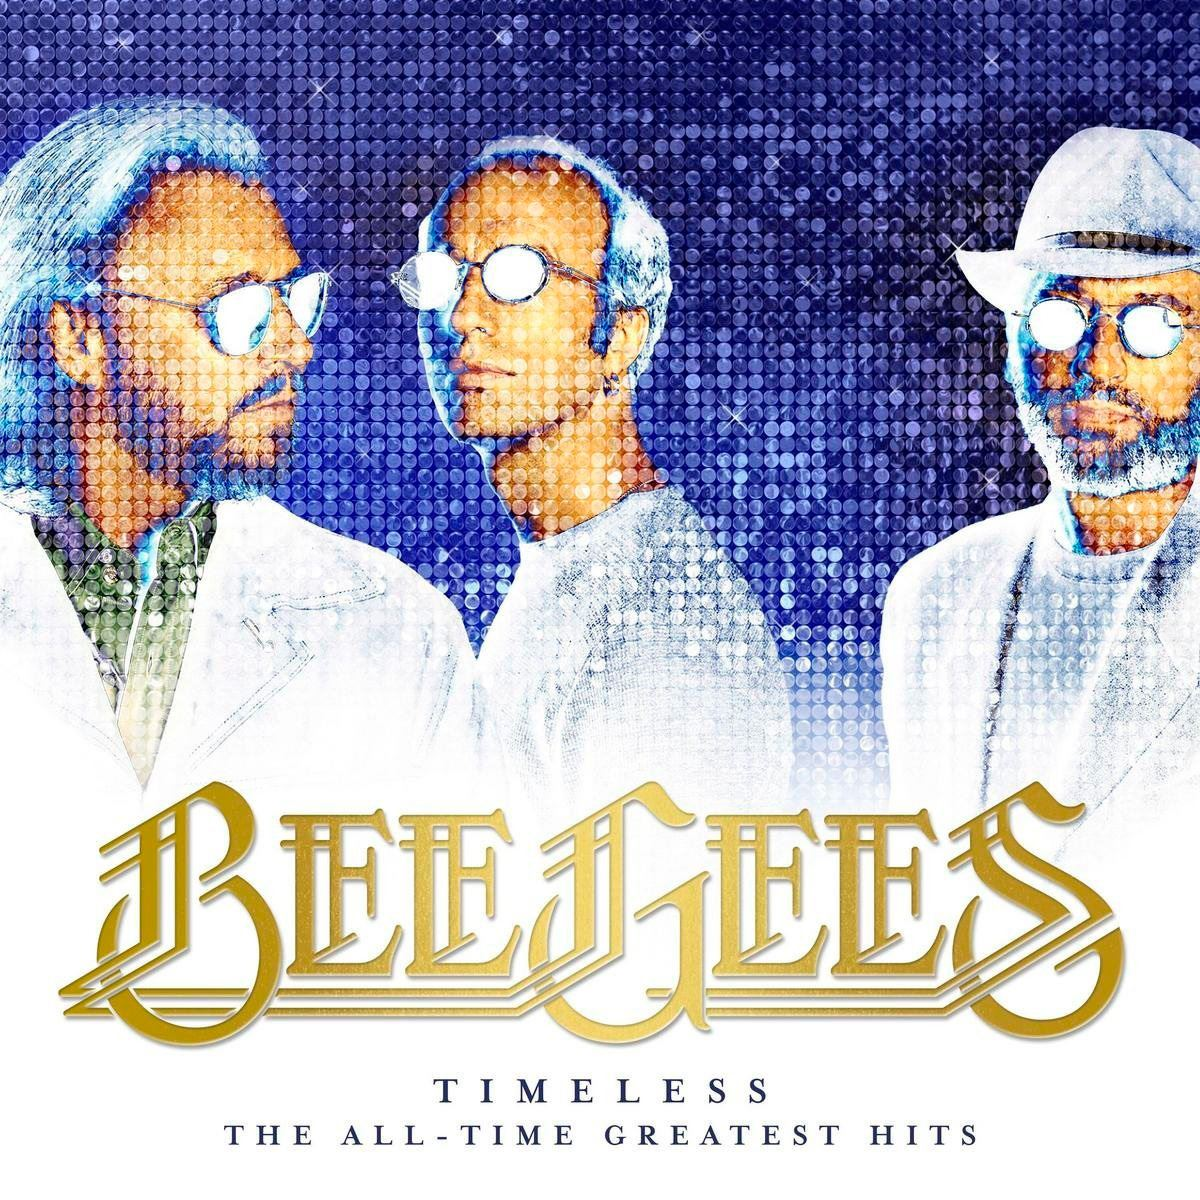 CD Bee Gees  Timeless-The All-Time Greatest Hits